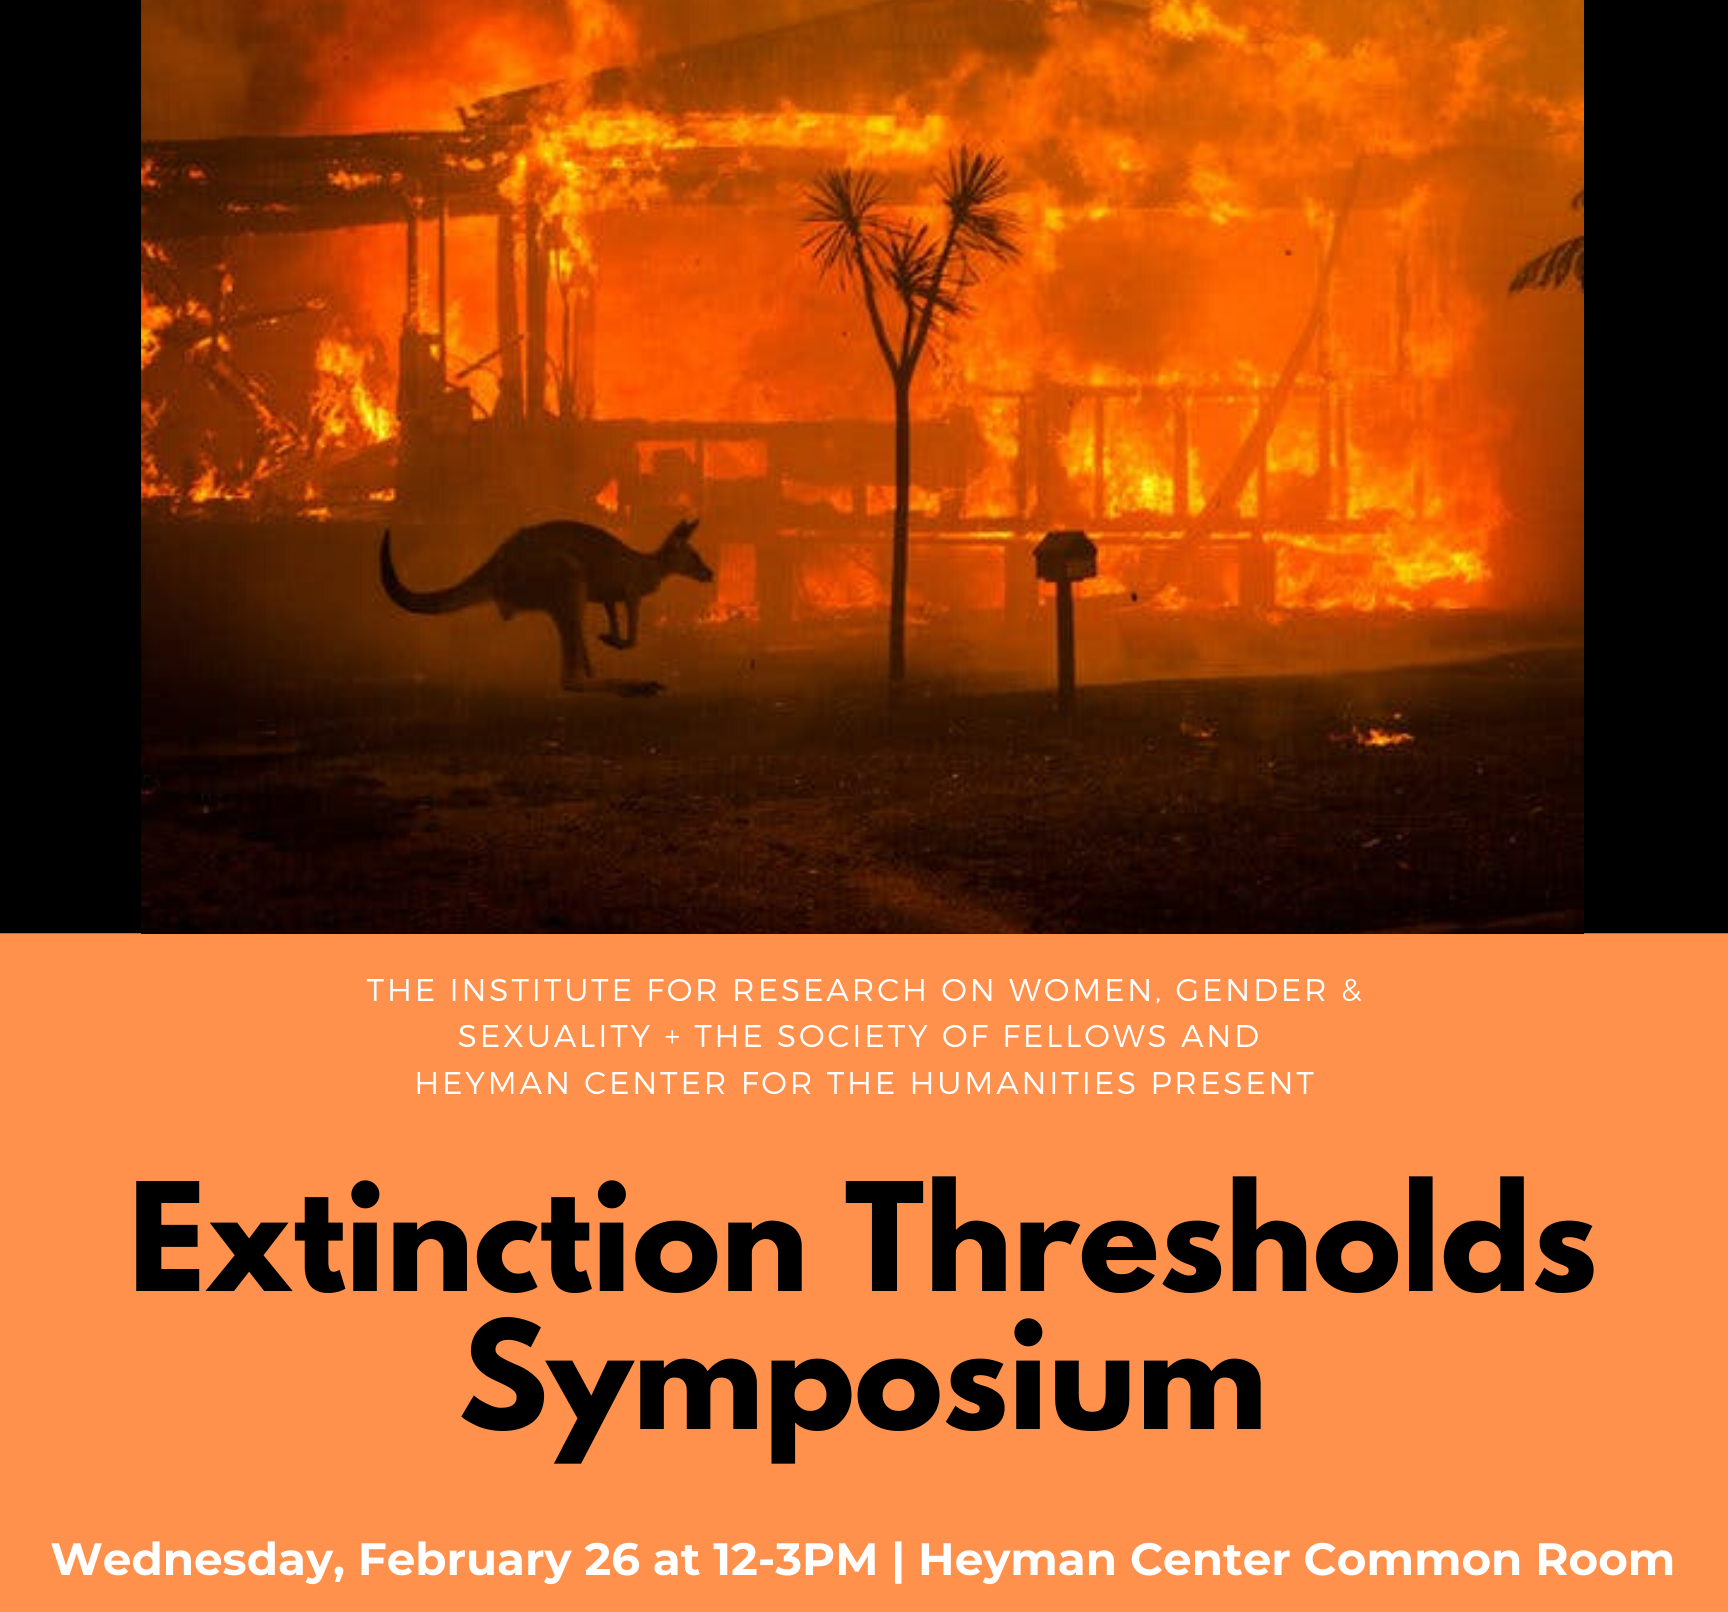 Extinction Thresholds Sympsoium